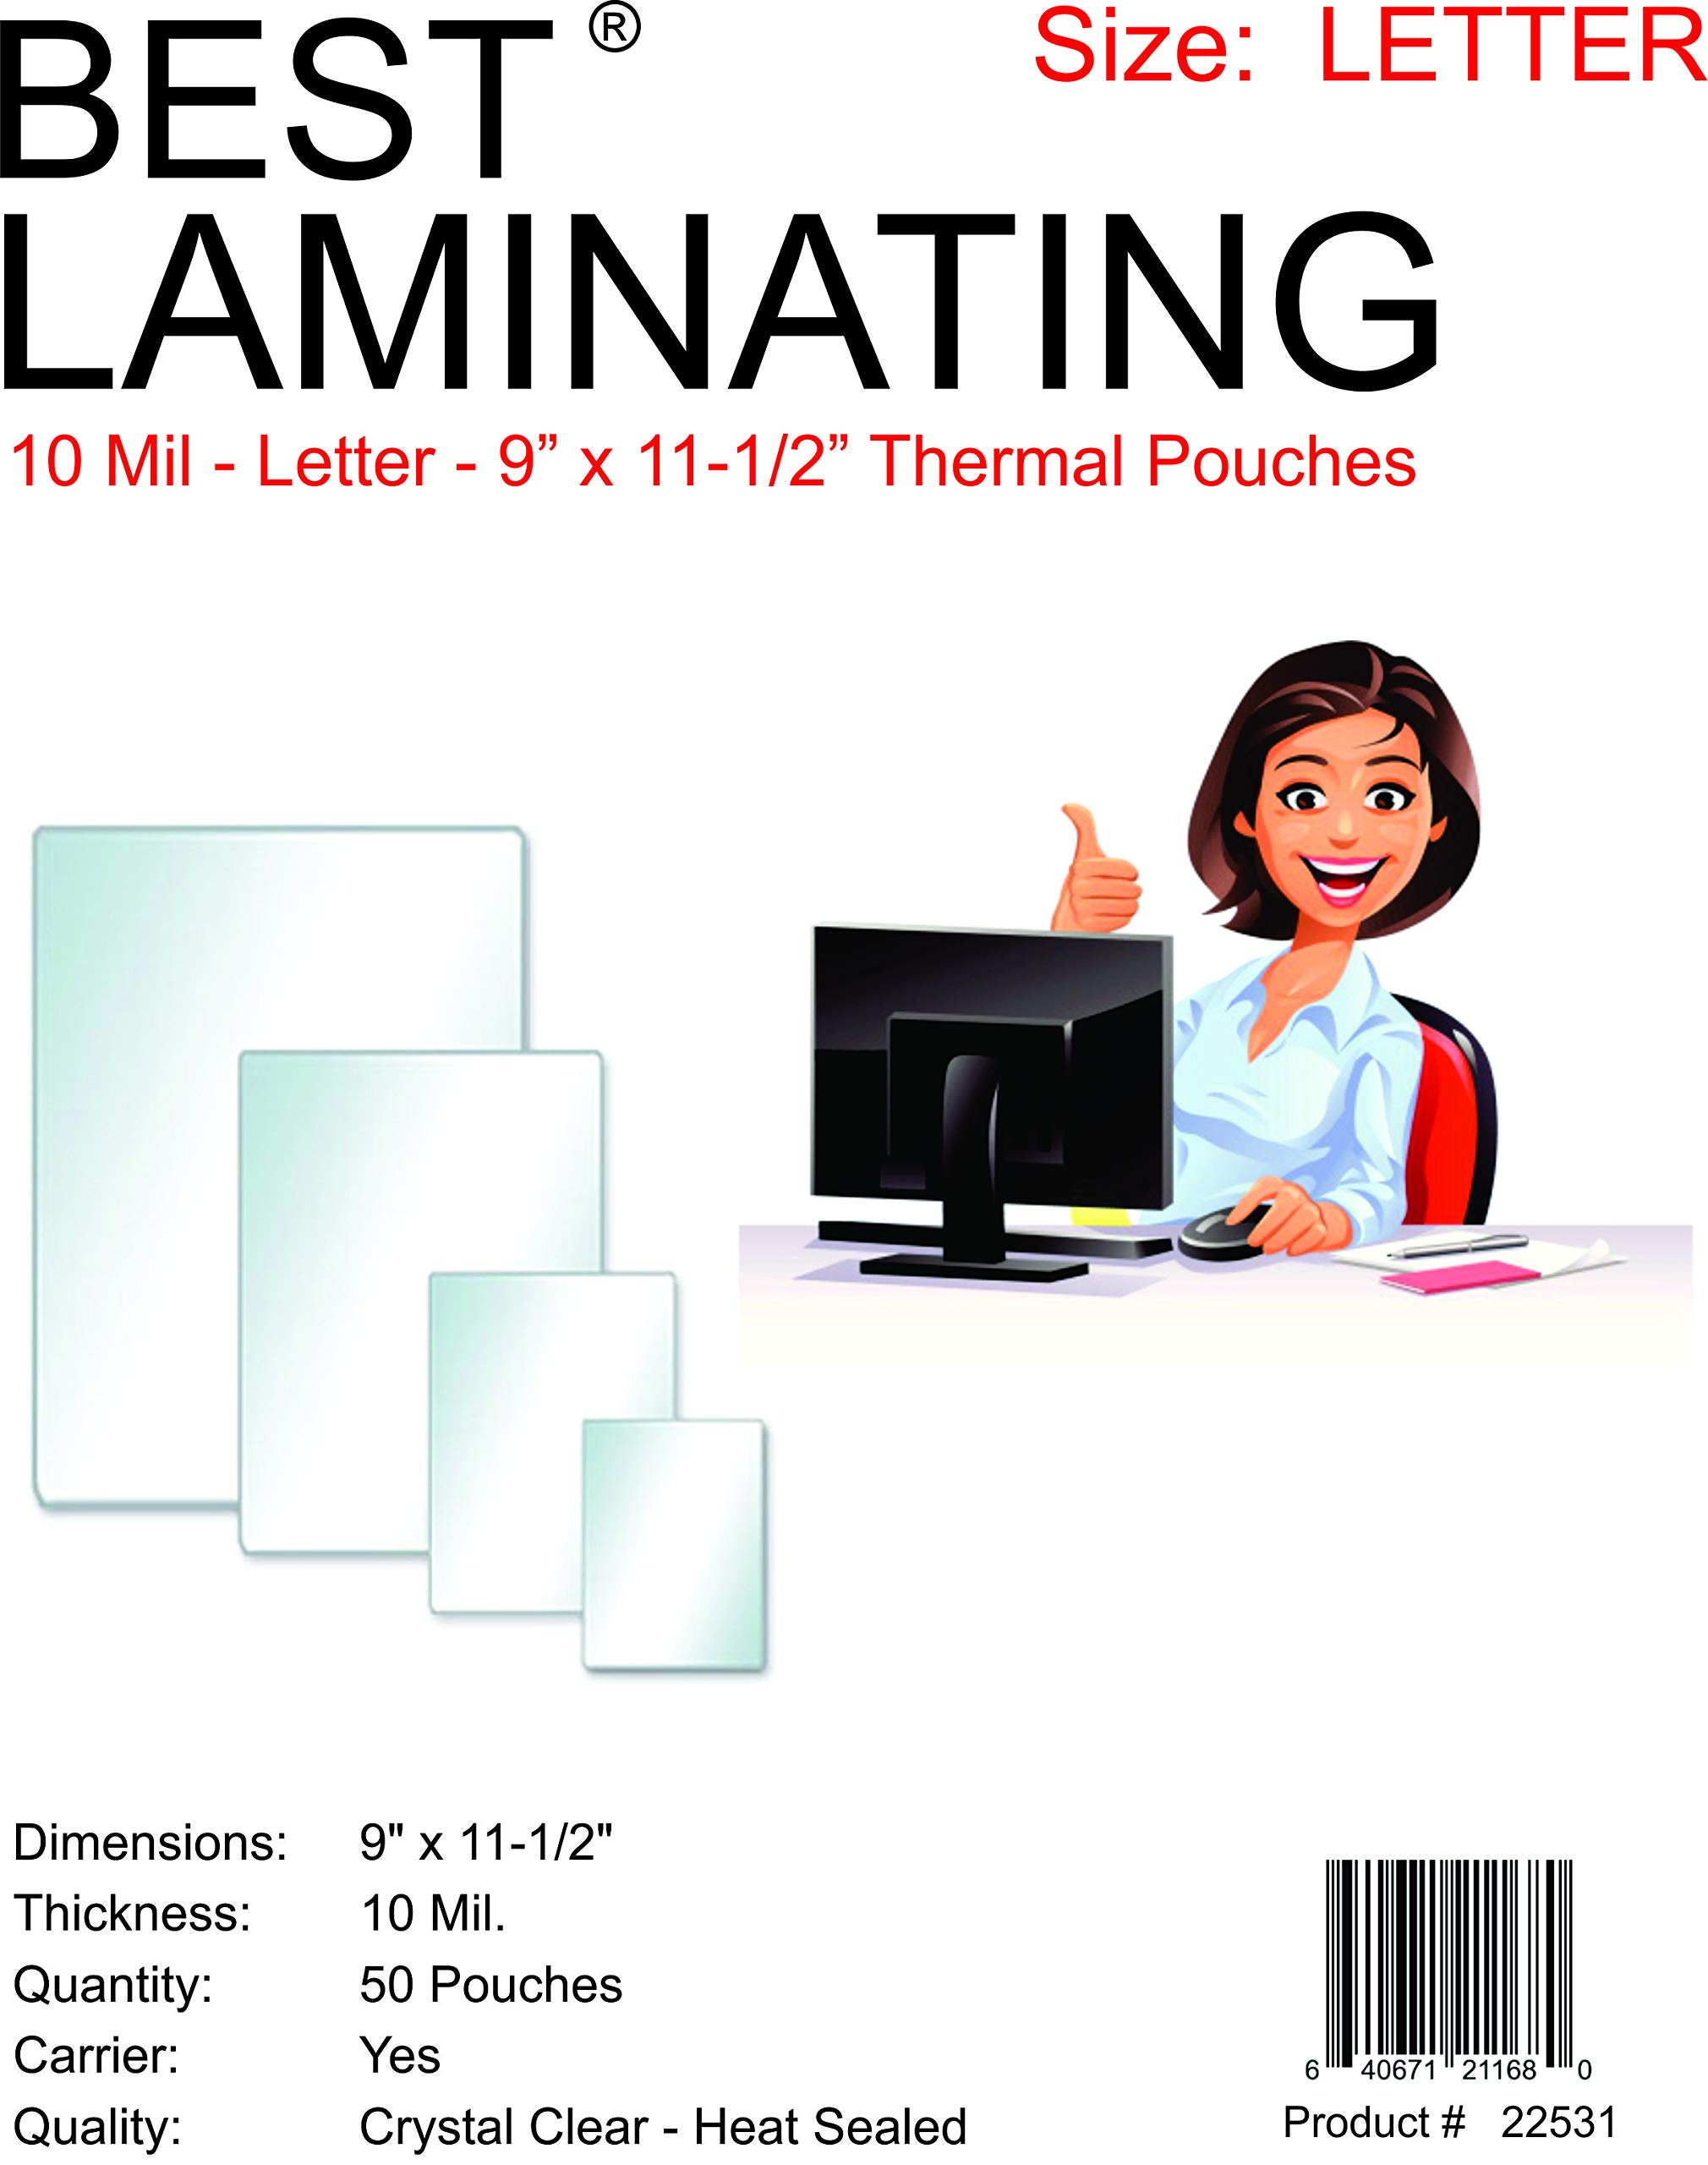 Best Laminating - 10 Mil Clear Letter Size Thermal Laminating Pouches - 9 X 11.5 - Qty 50 by Best Laminating